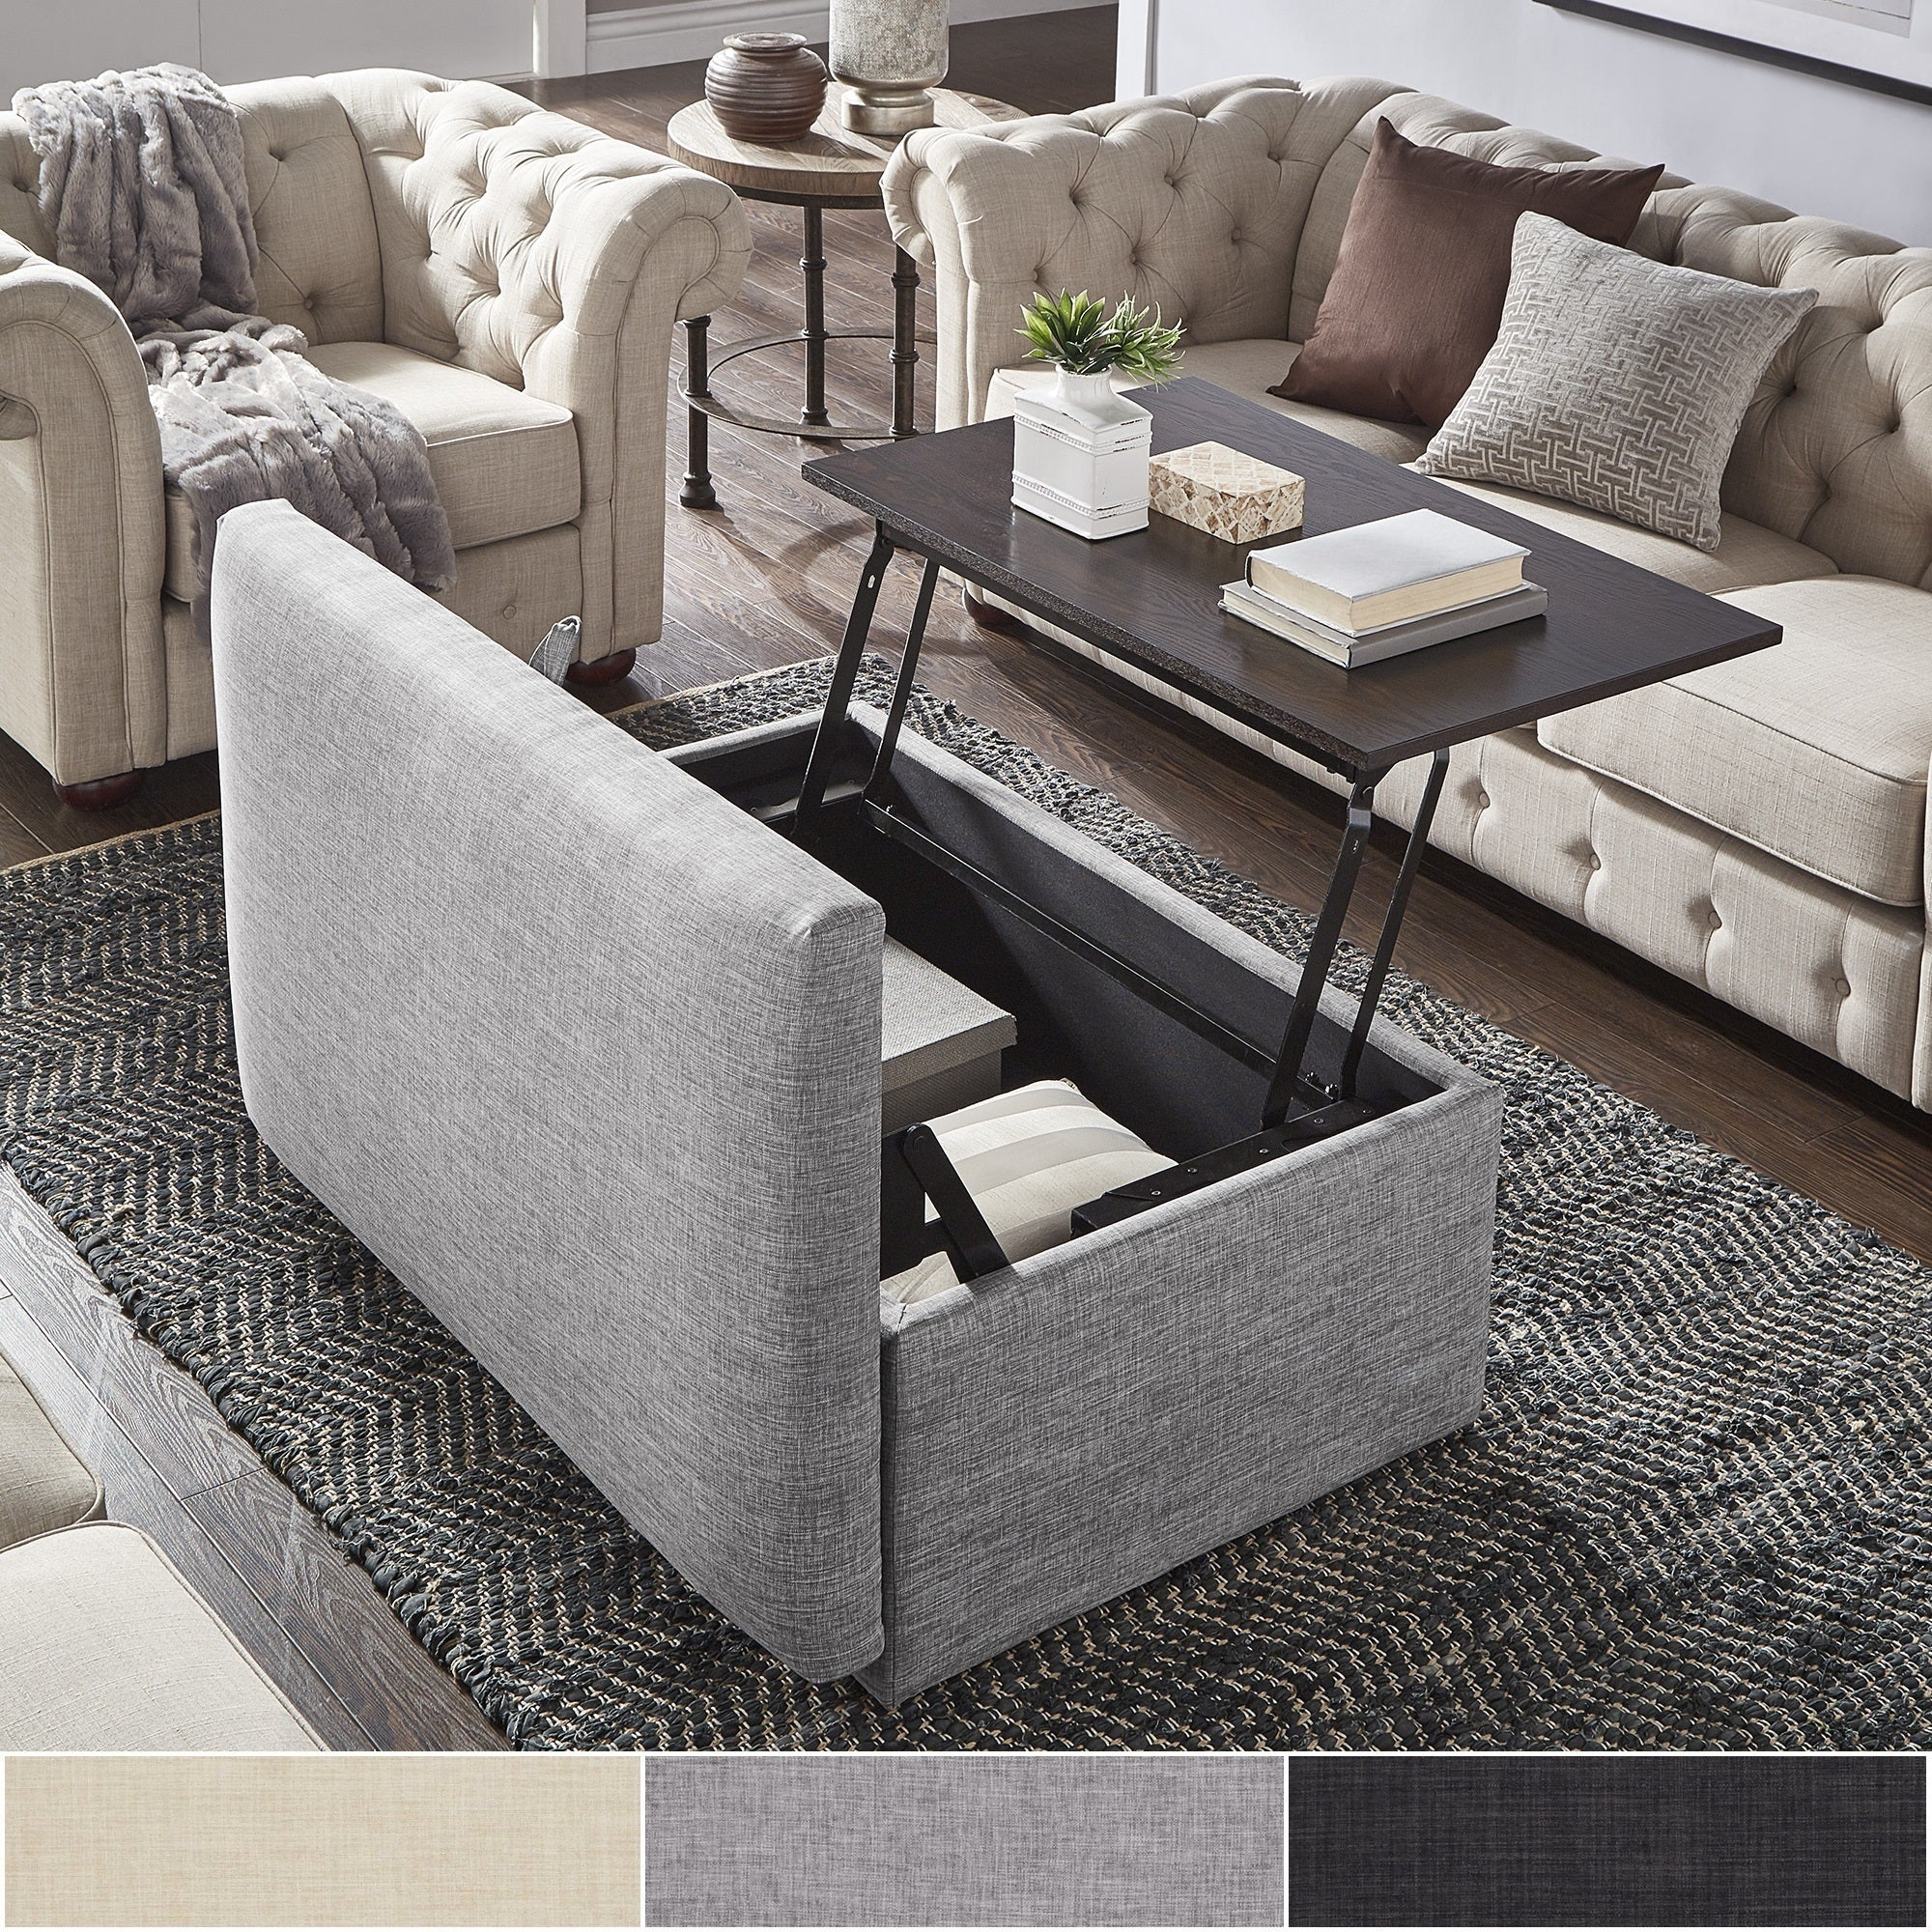 Ordinaire Shop Landen Lift Top Upholstered Storage Ottoman Coffee Table By INSPIRE Q  Artisan   On Sale   Free Shipping Today   Overstock.com   22377961